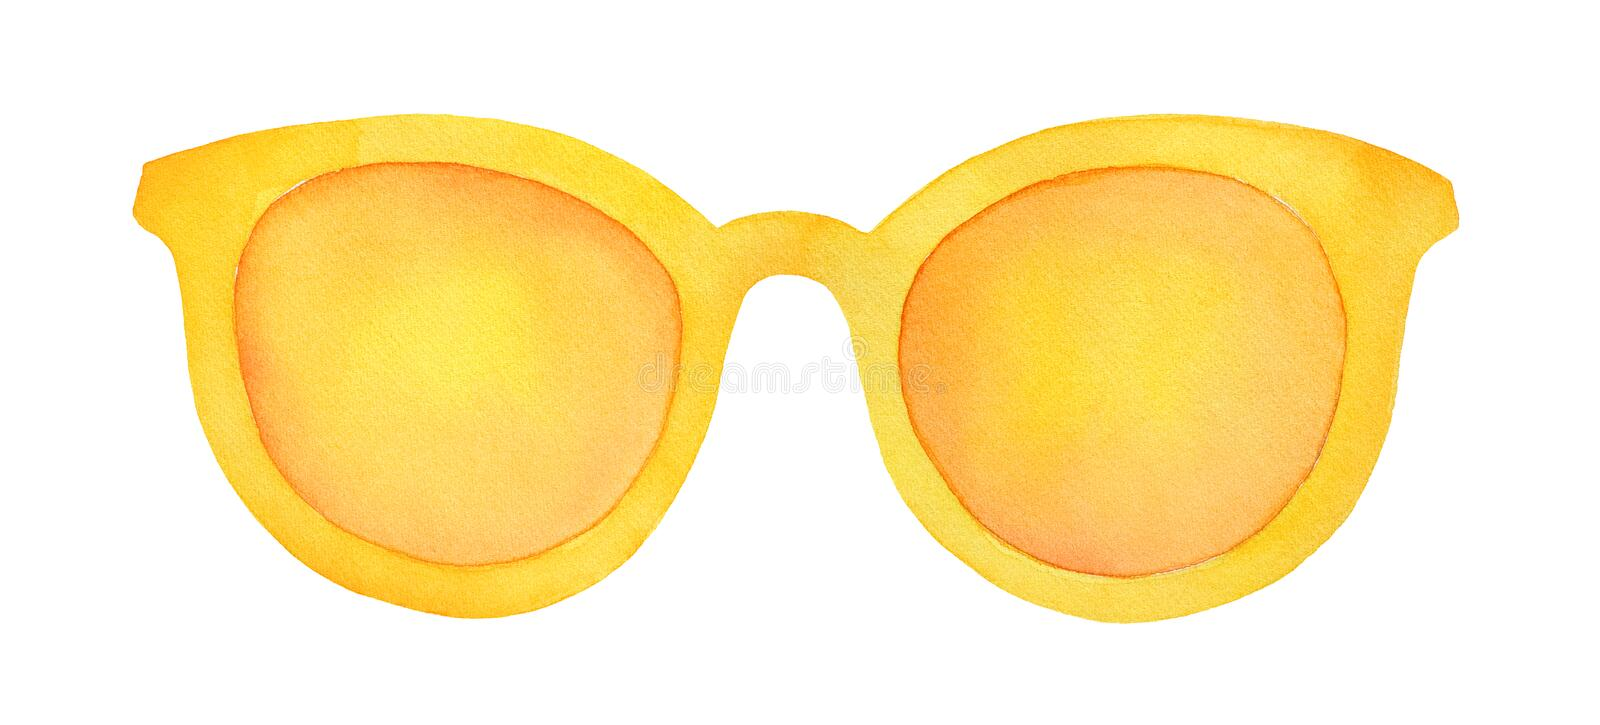 Colorful sunglasses with yellow lens and frame. One single object, closeup, front view. Hand drawn watercolour drawing on white background, cutout clipart royalty free illustration